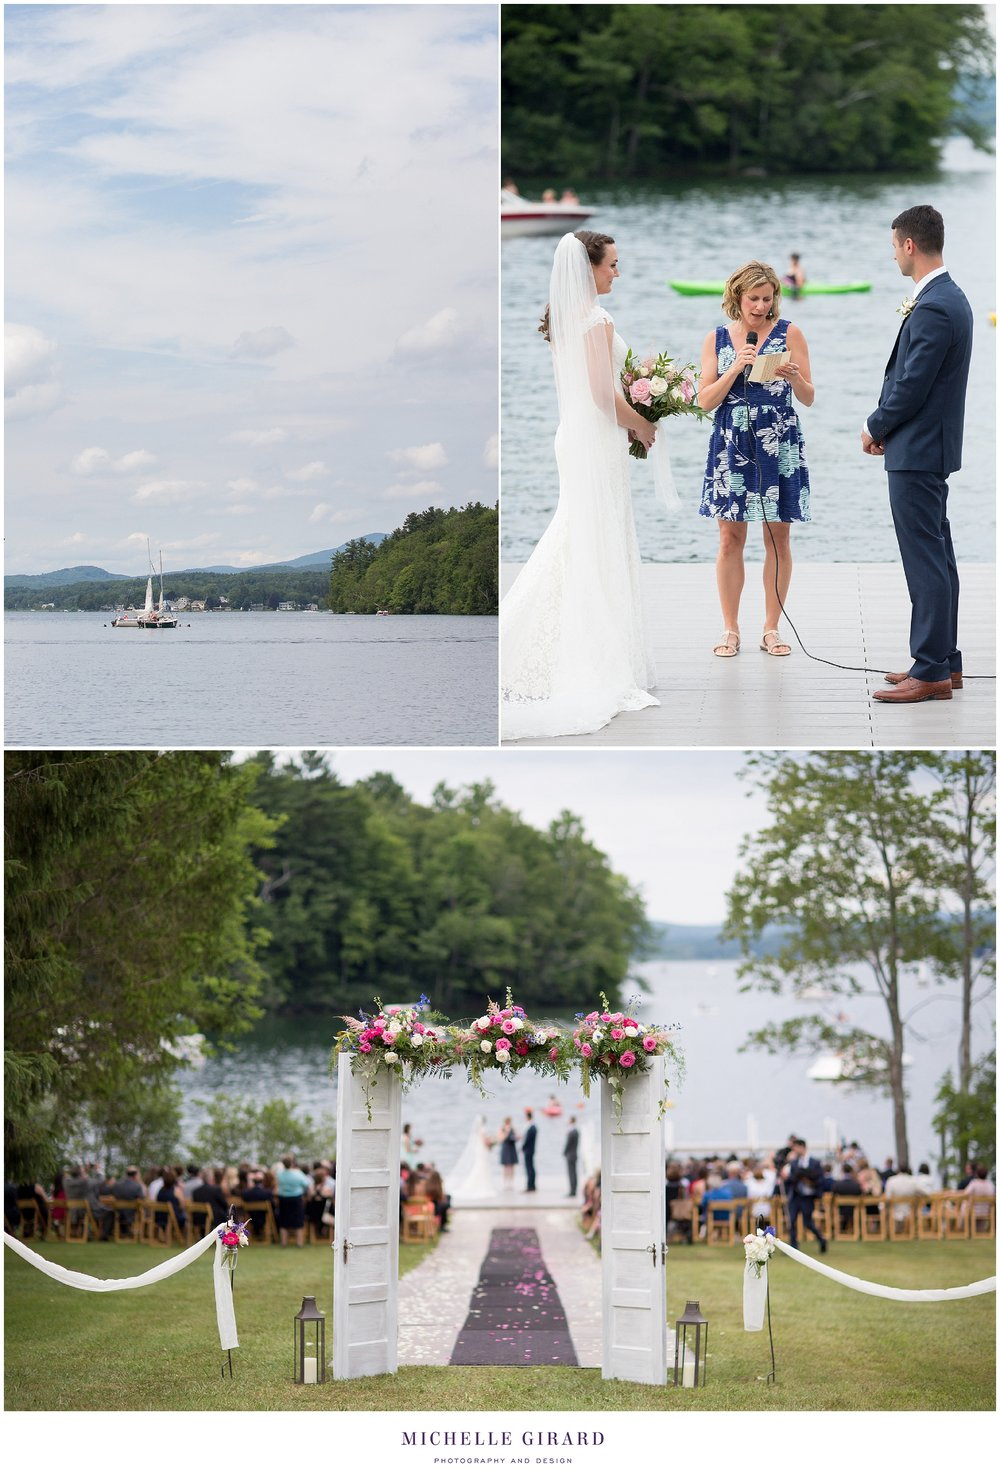 LakesideHomeWedding_BerkshiresTentReception_MichelleGirardPhotography041.jpg